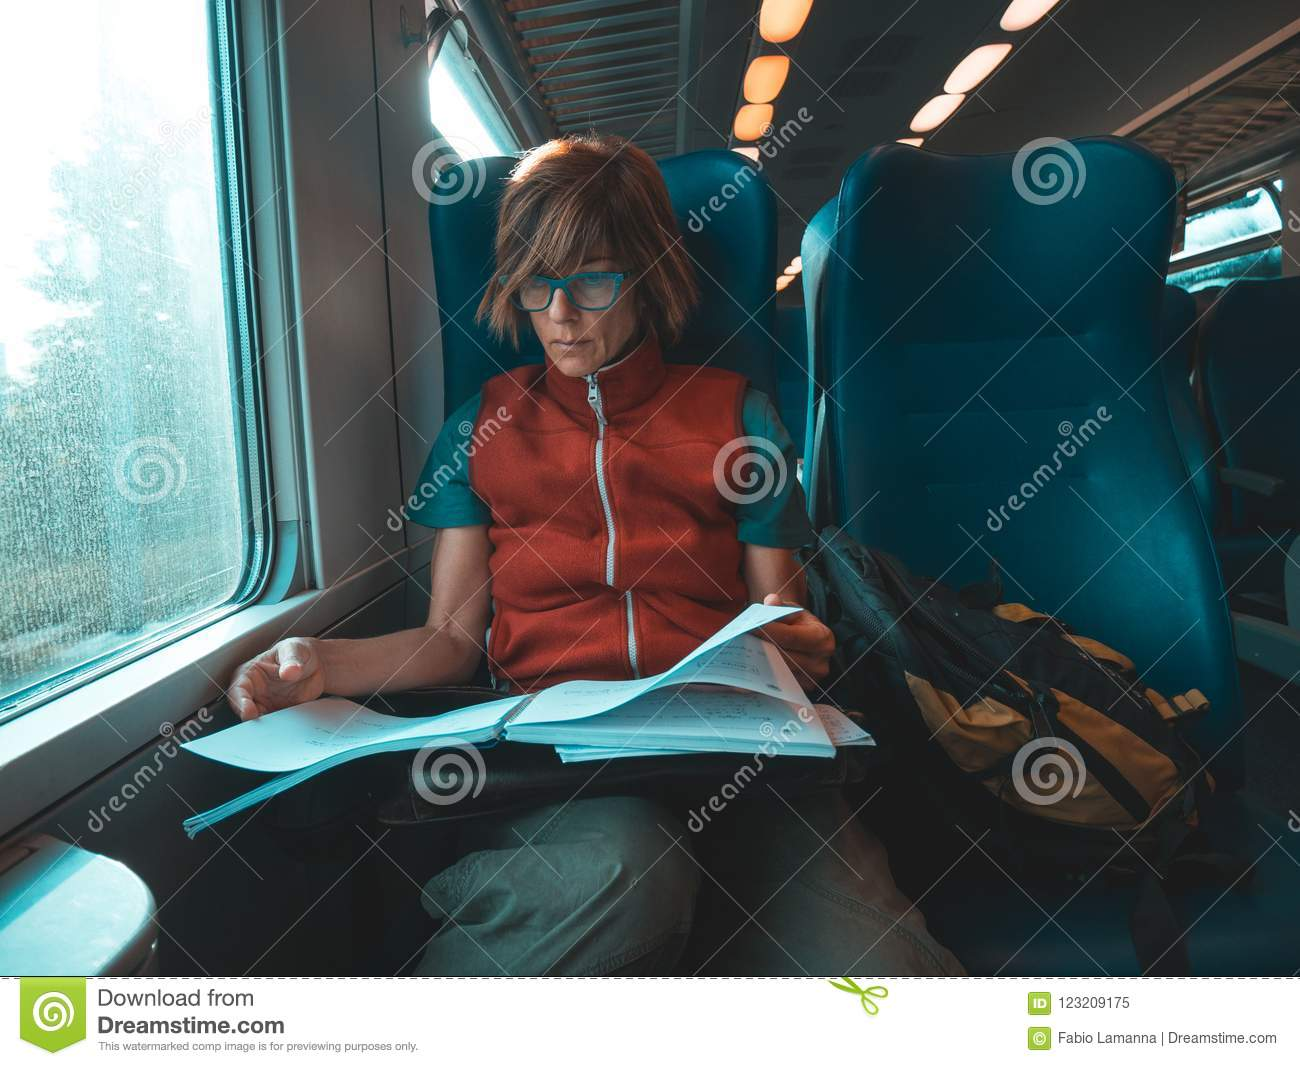 Woman using smart phone sitting traveling by train hand writing on paper. Desaturated cold tone color grading. Working mobility co